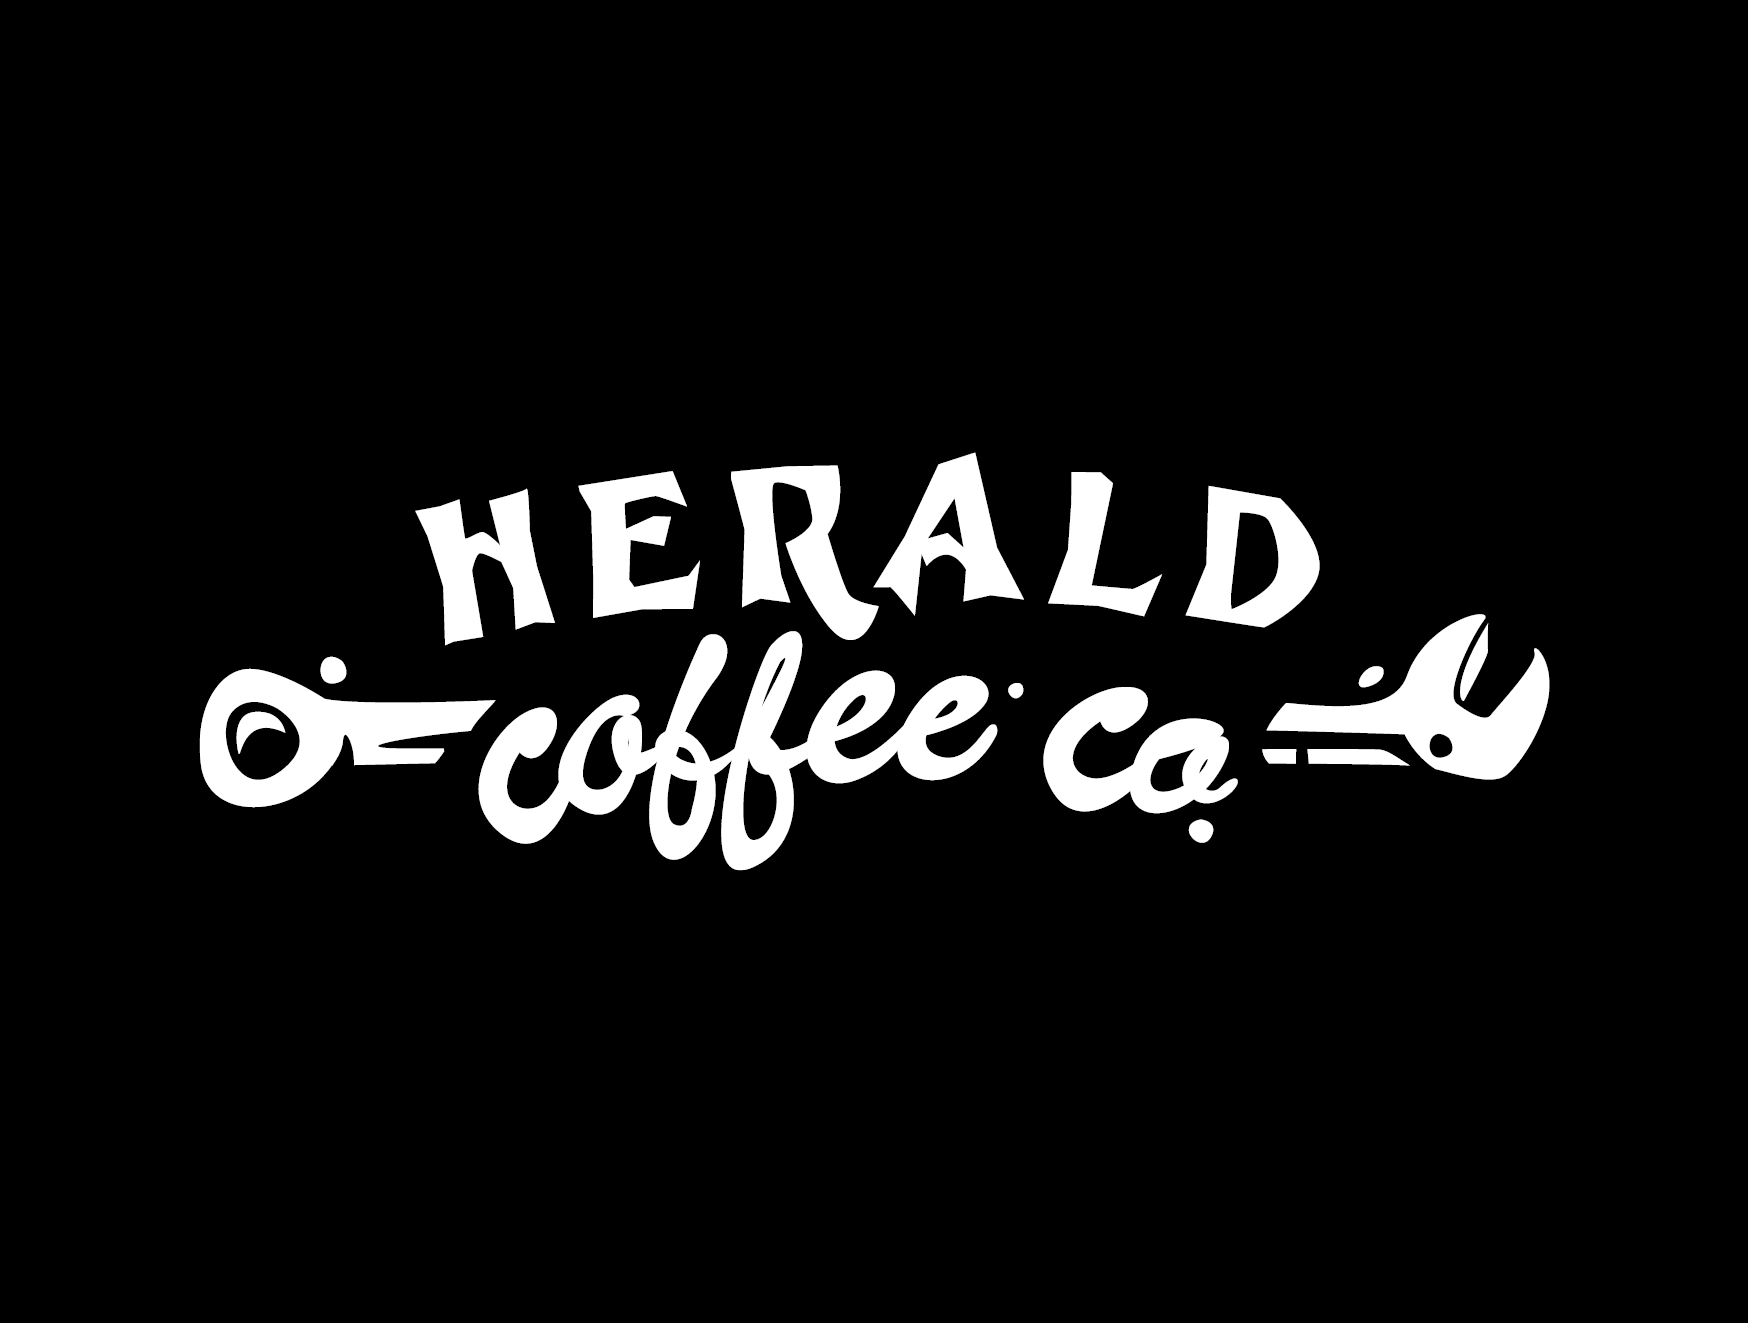 HERALD COFFEE BRAND